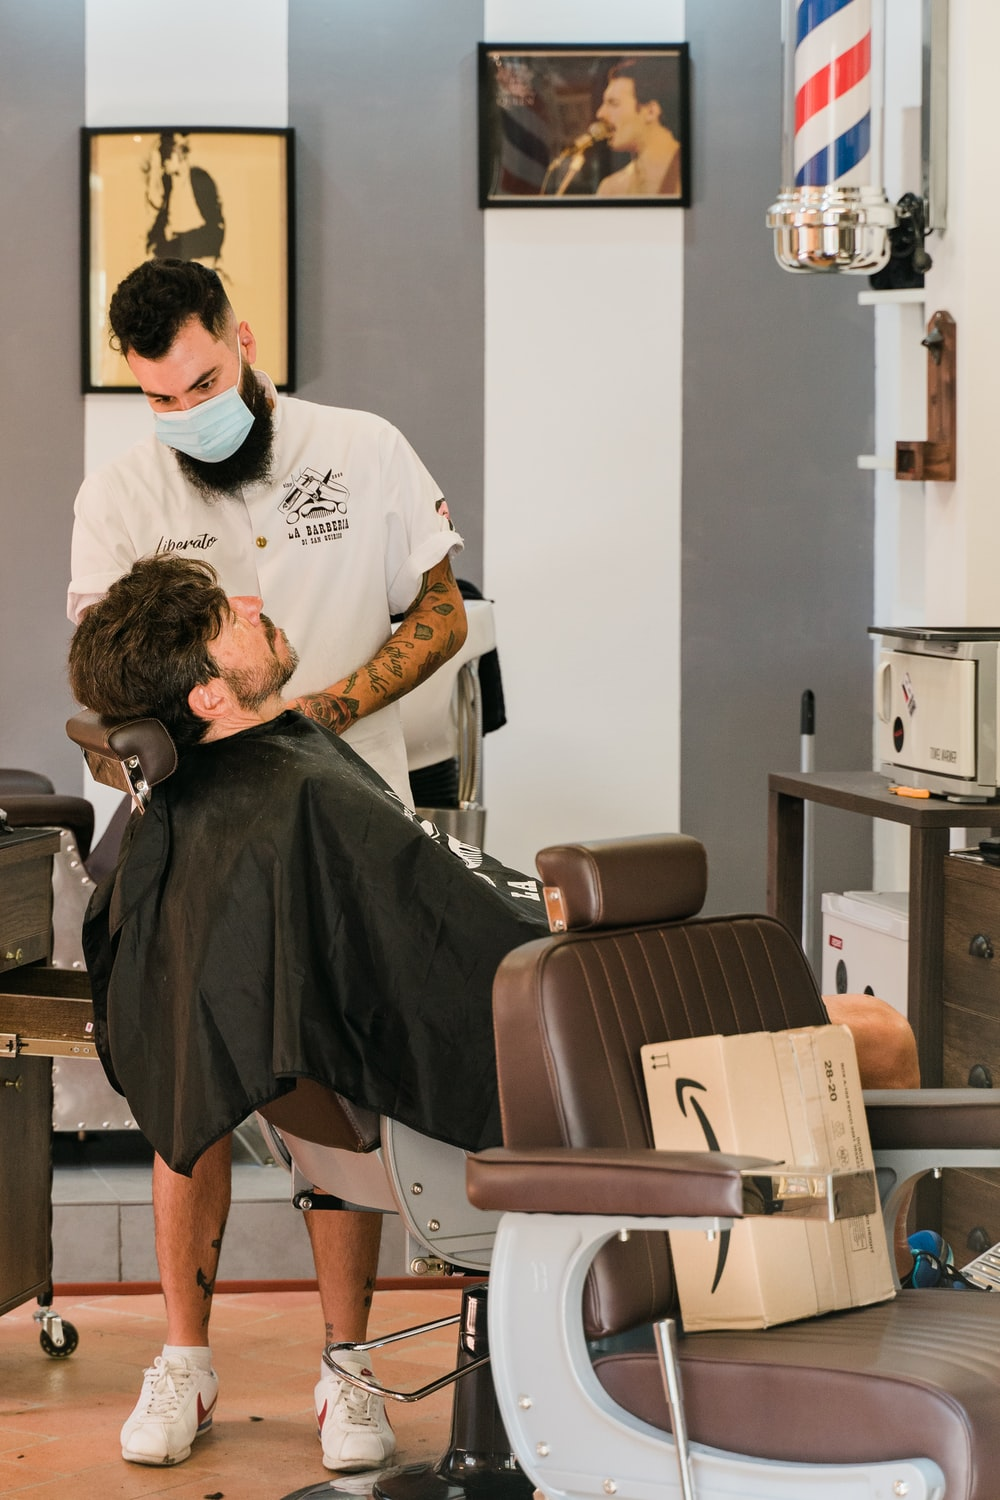 man in white t-shirt sitting on barber chair